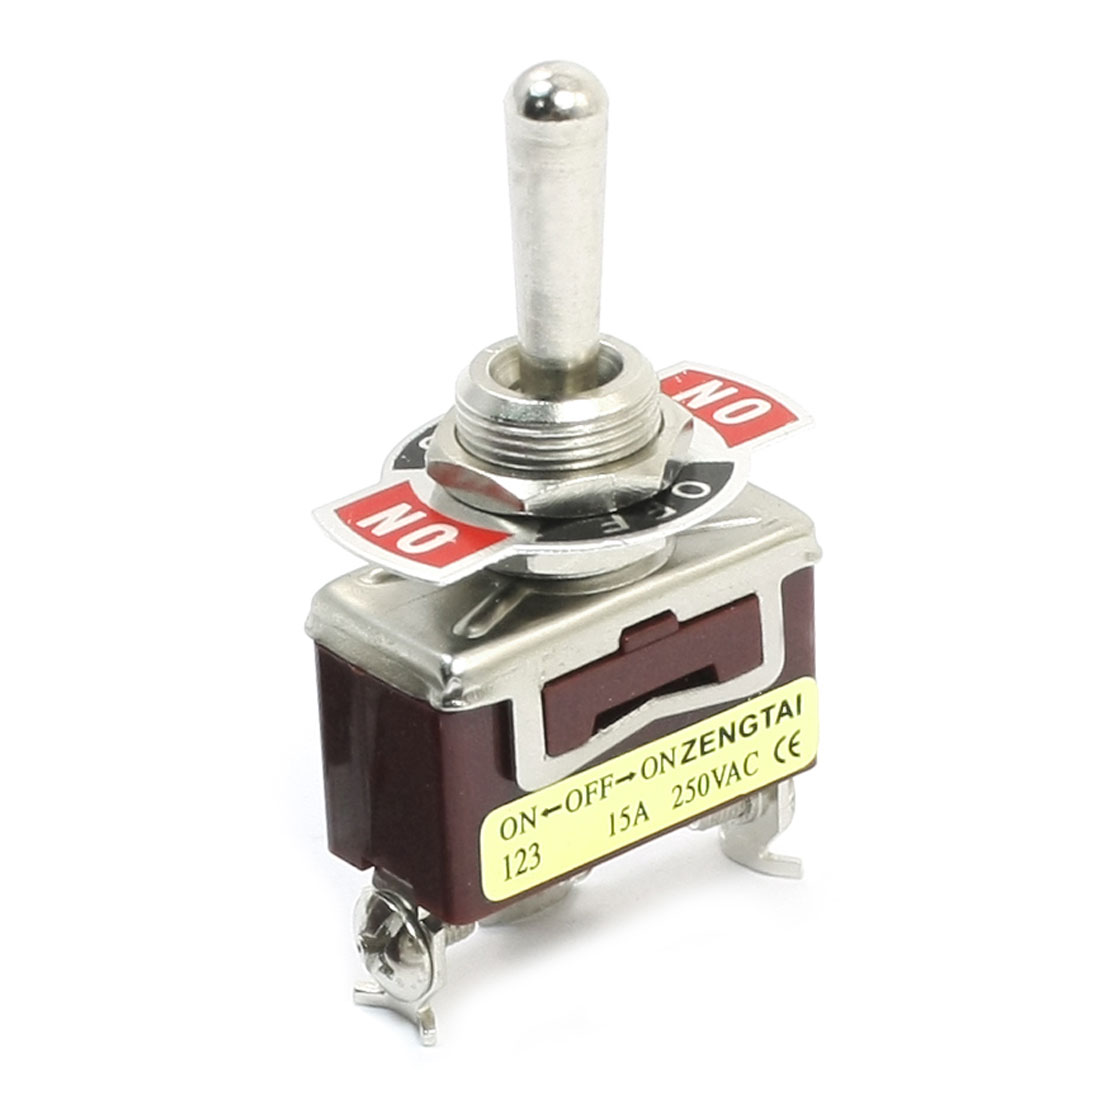 11mm Panel Mount SPDT ON/OFF/ON 3 Position Toggle Switch AC 250V 15A E-TEN123